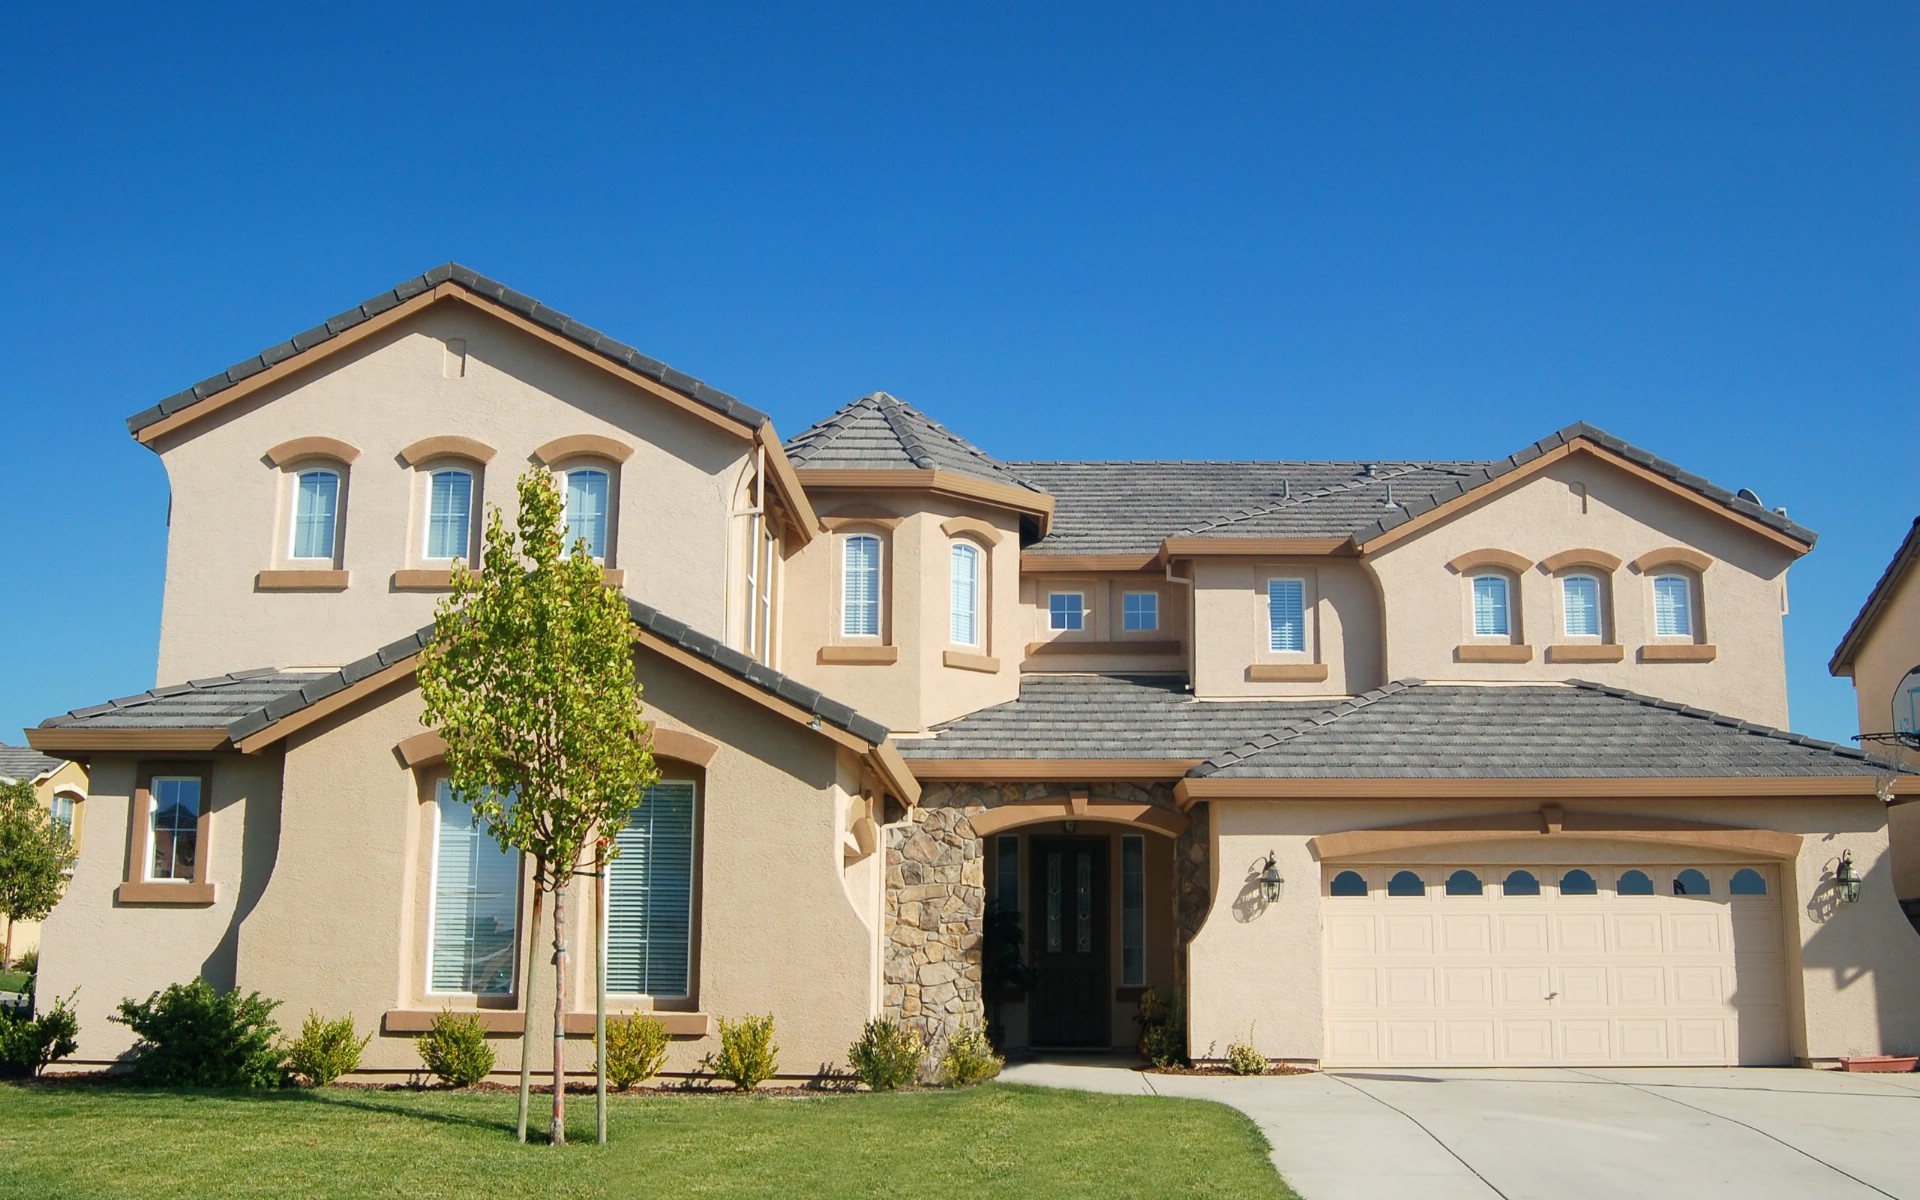 1920 1200 for House images hd